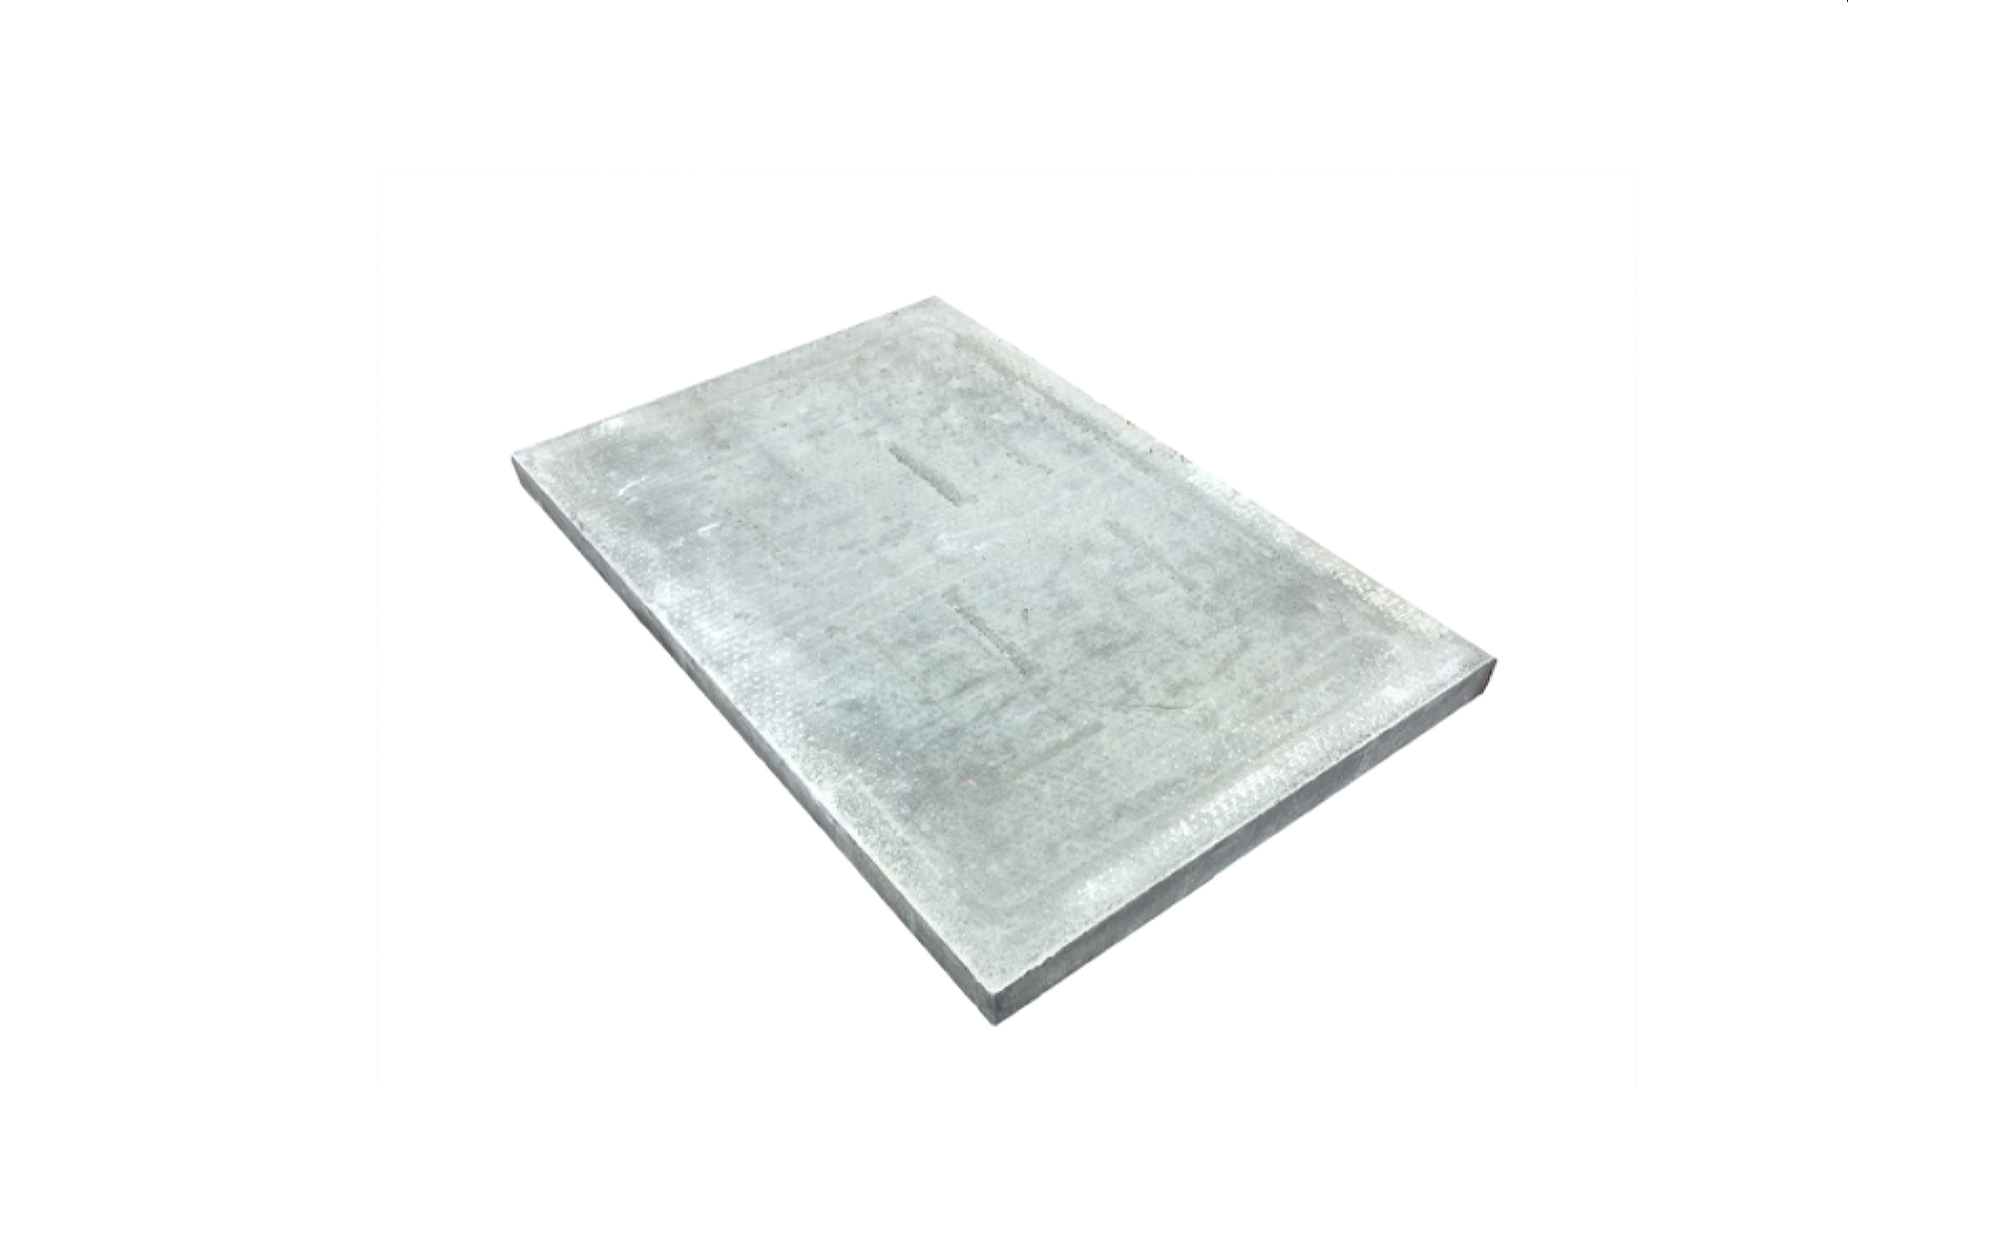 Commercial Flag Stone